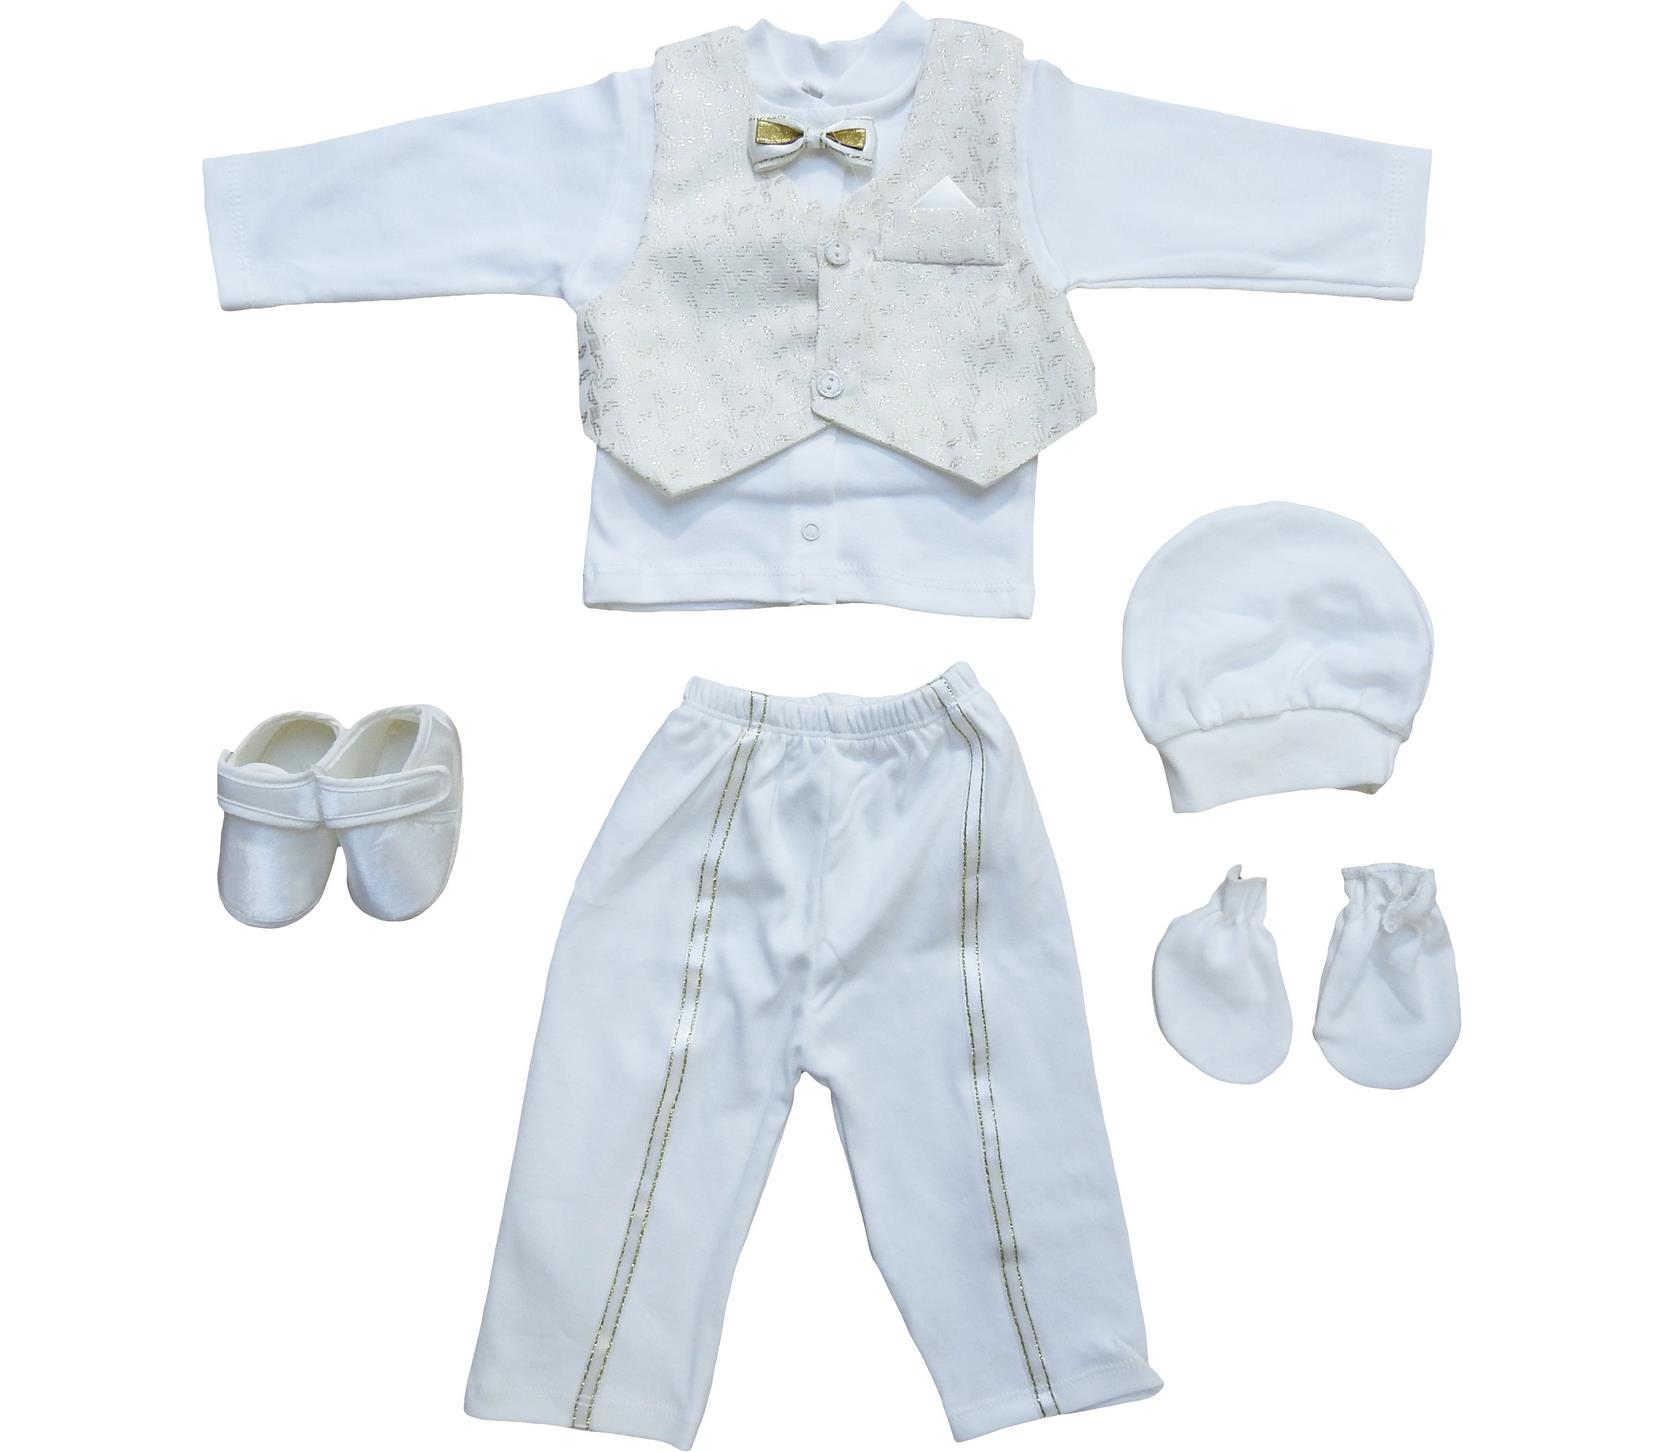 Wholesale kits for discharge and baptism, for baby boys